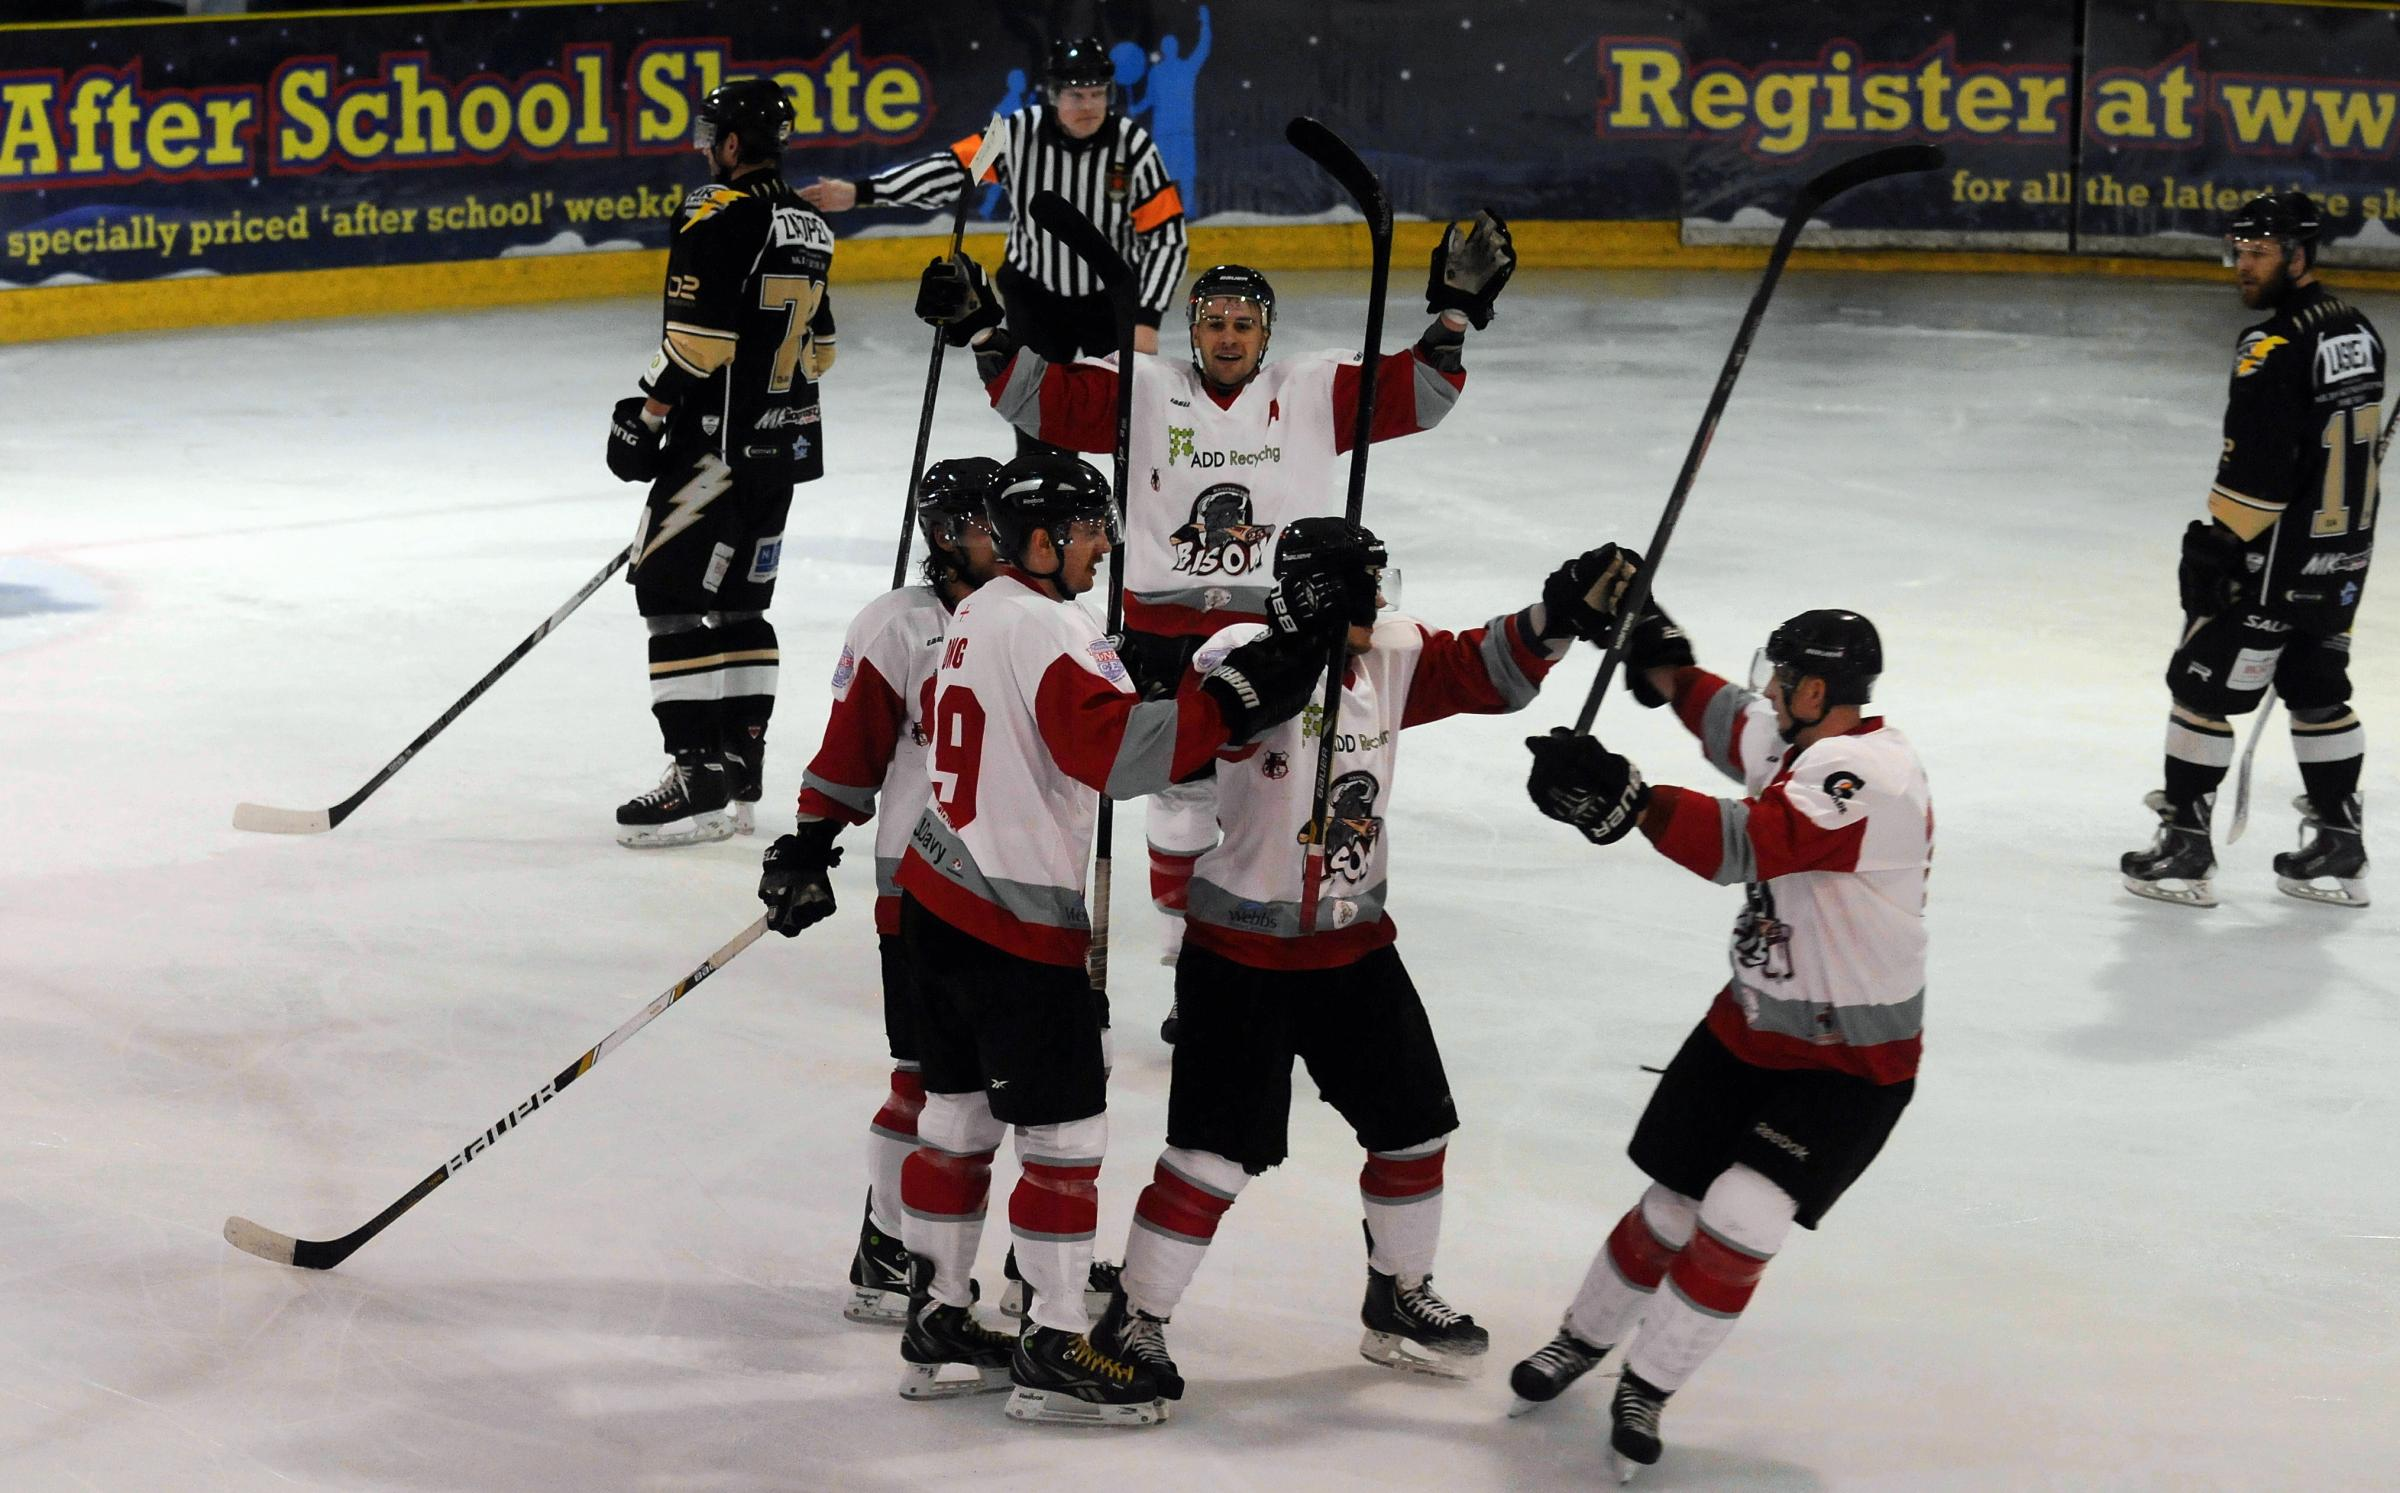 Basingstoke Bison open their campaign at home to Peterborough